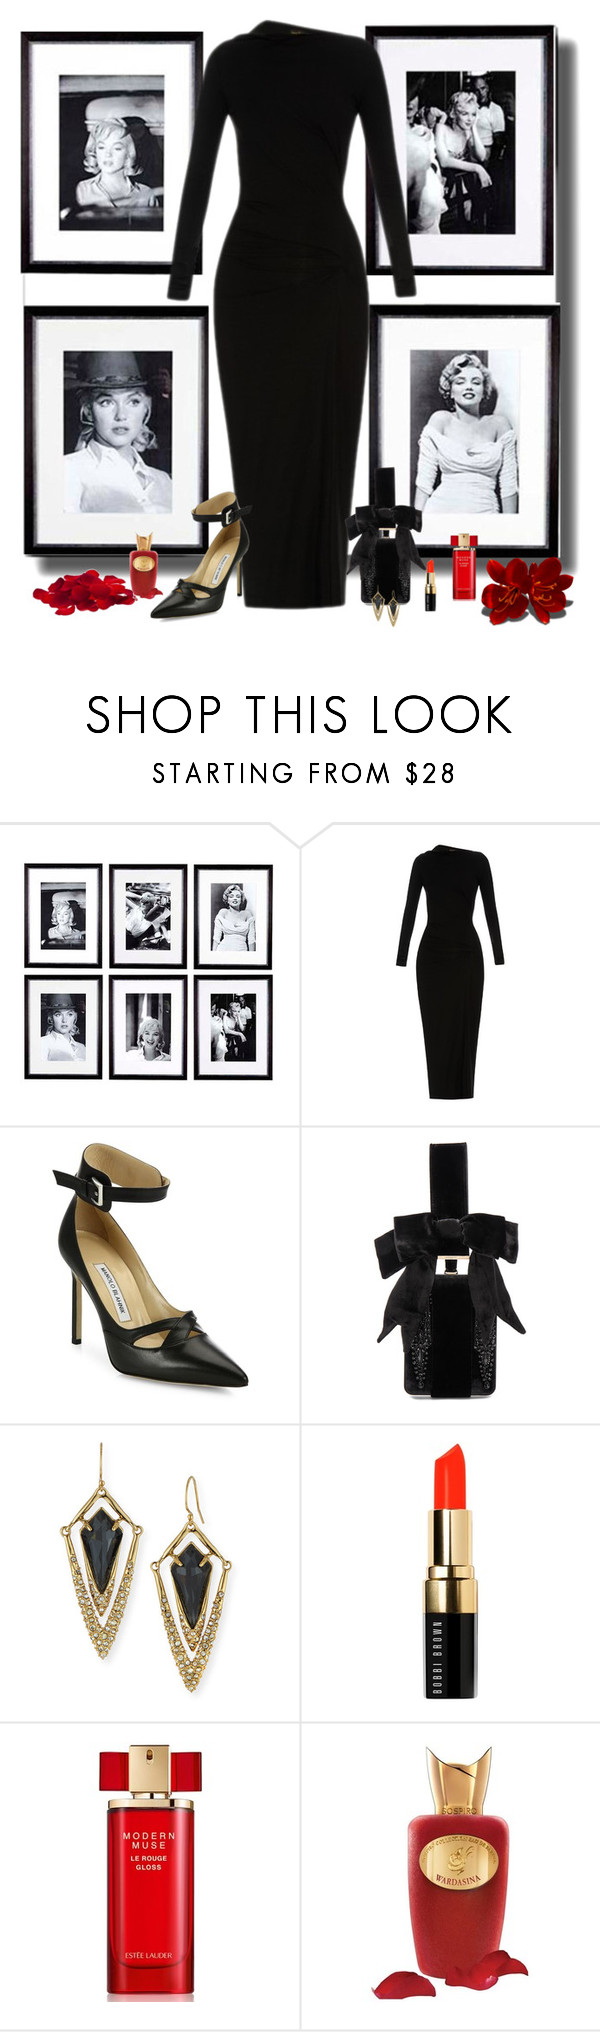 """Marilyn"" by whiteflower7 ❤ liked on Polyvore featuring Eichholtz, Vivienne Westwood Anglomania, Manolo Blahnik, Givenchy, Alexis Bittar, Bobbi Brown Cosmetics, Estée Lauder and Sospiro"